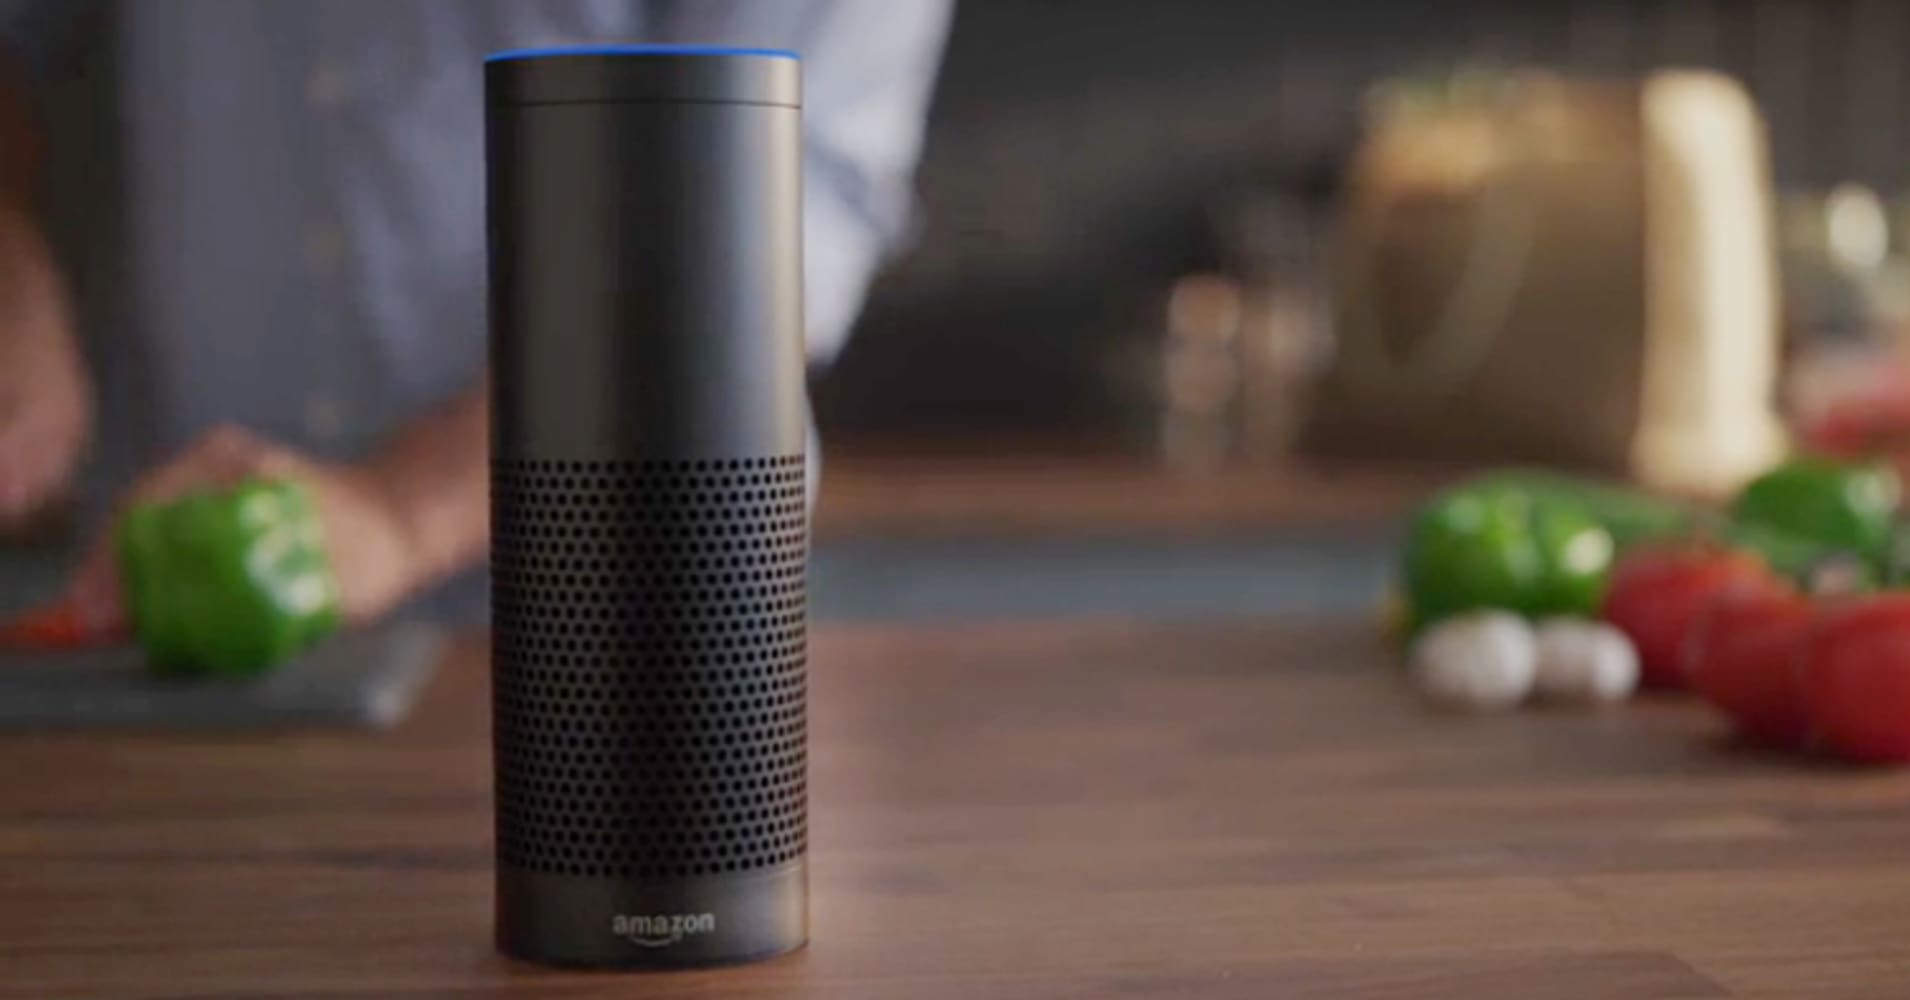 Rbc Capital Markets >> Amazon's Alexa could be a $10 billion business by 2020: Research